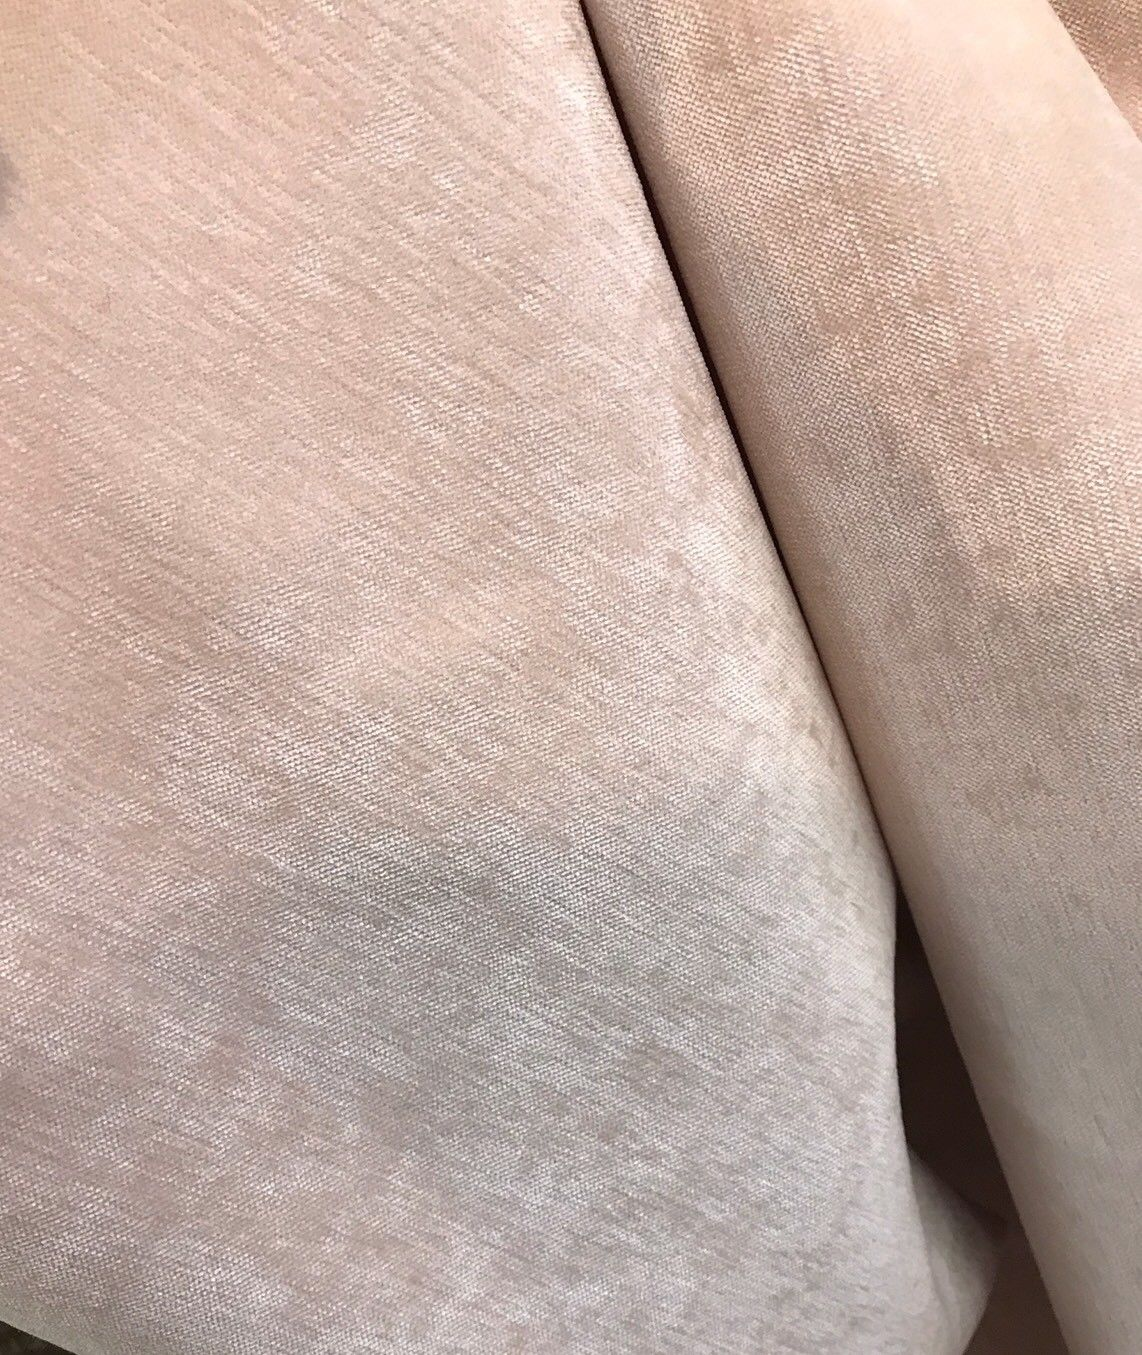 SWATCH -Designer Velvet Chenille Fabric - Ballet Pink - Upholstery - Fancy Styles Fabric Boutique